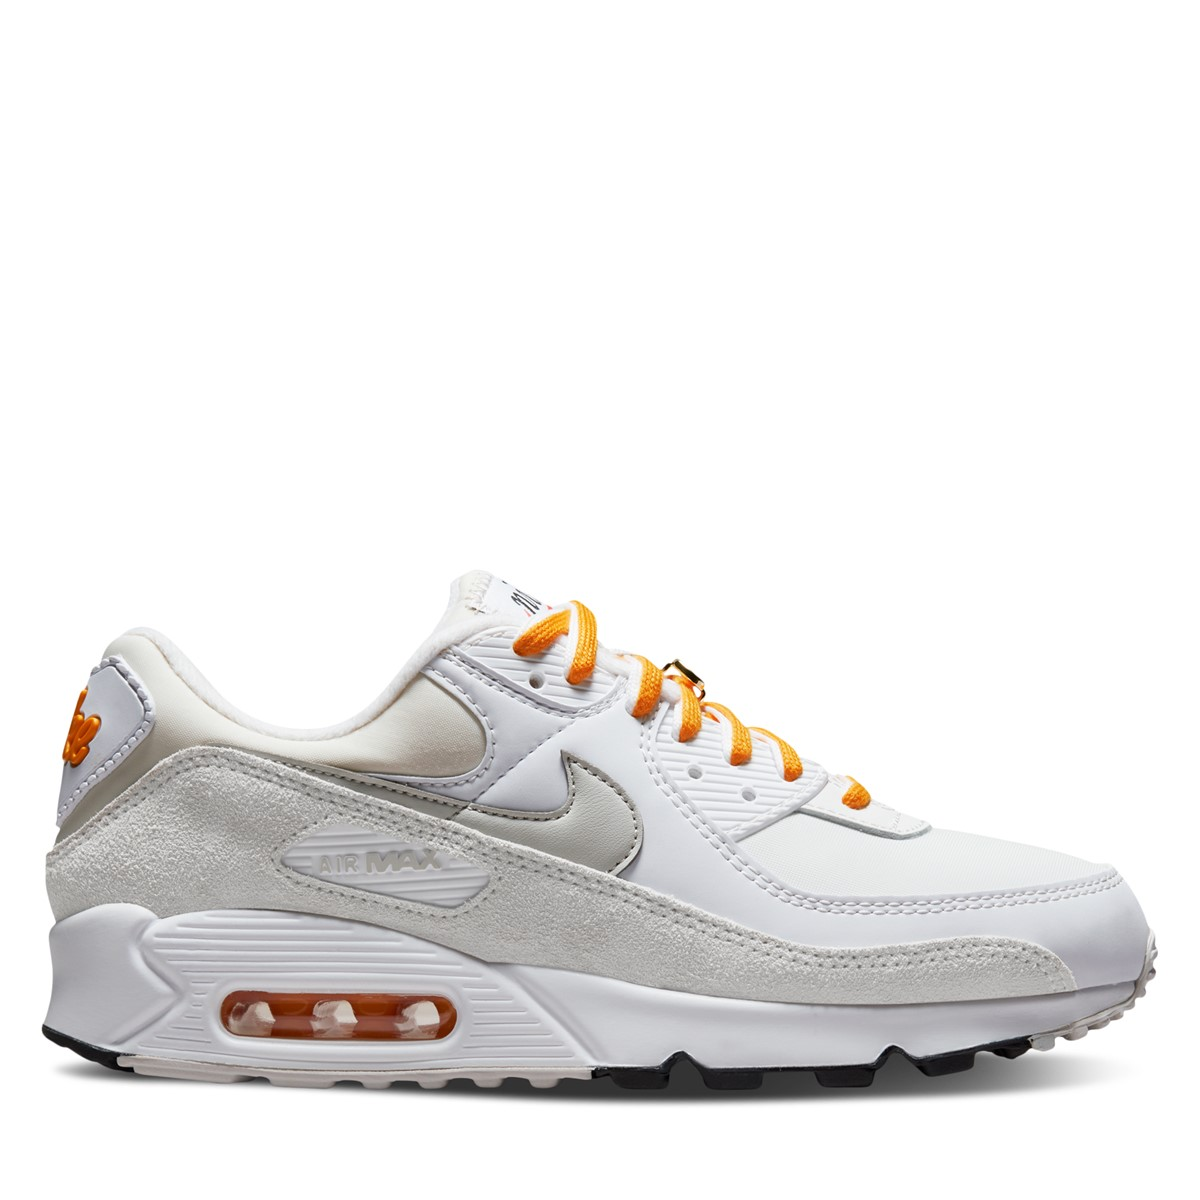 Women's Air Max 90 SE Sneakers in White/Beige